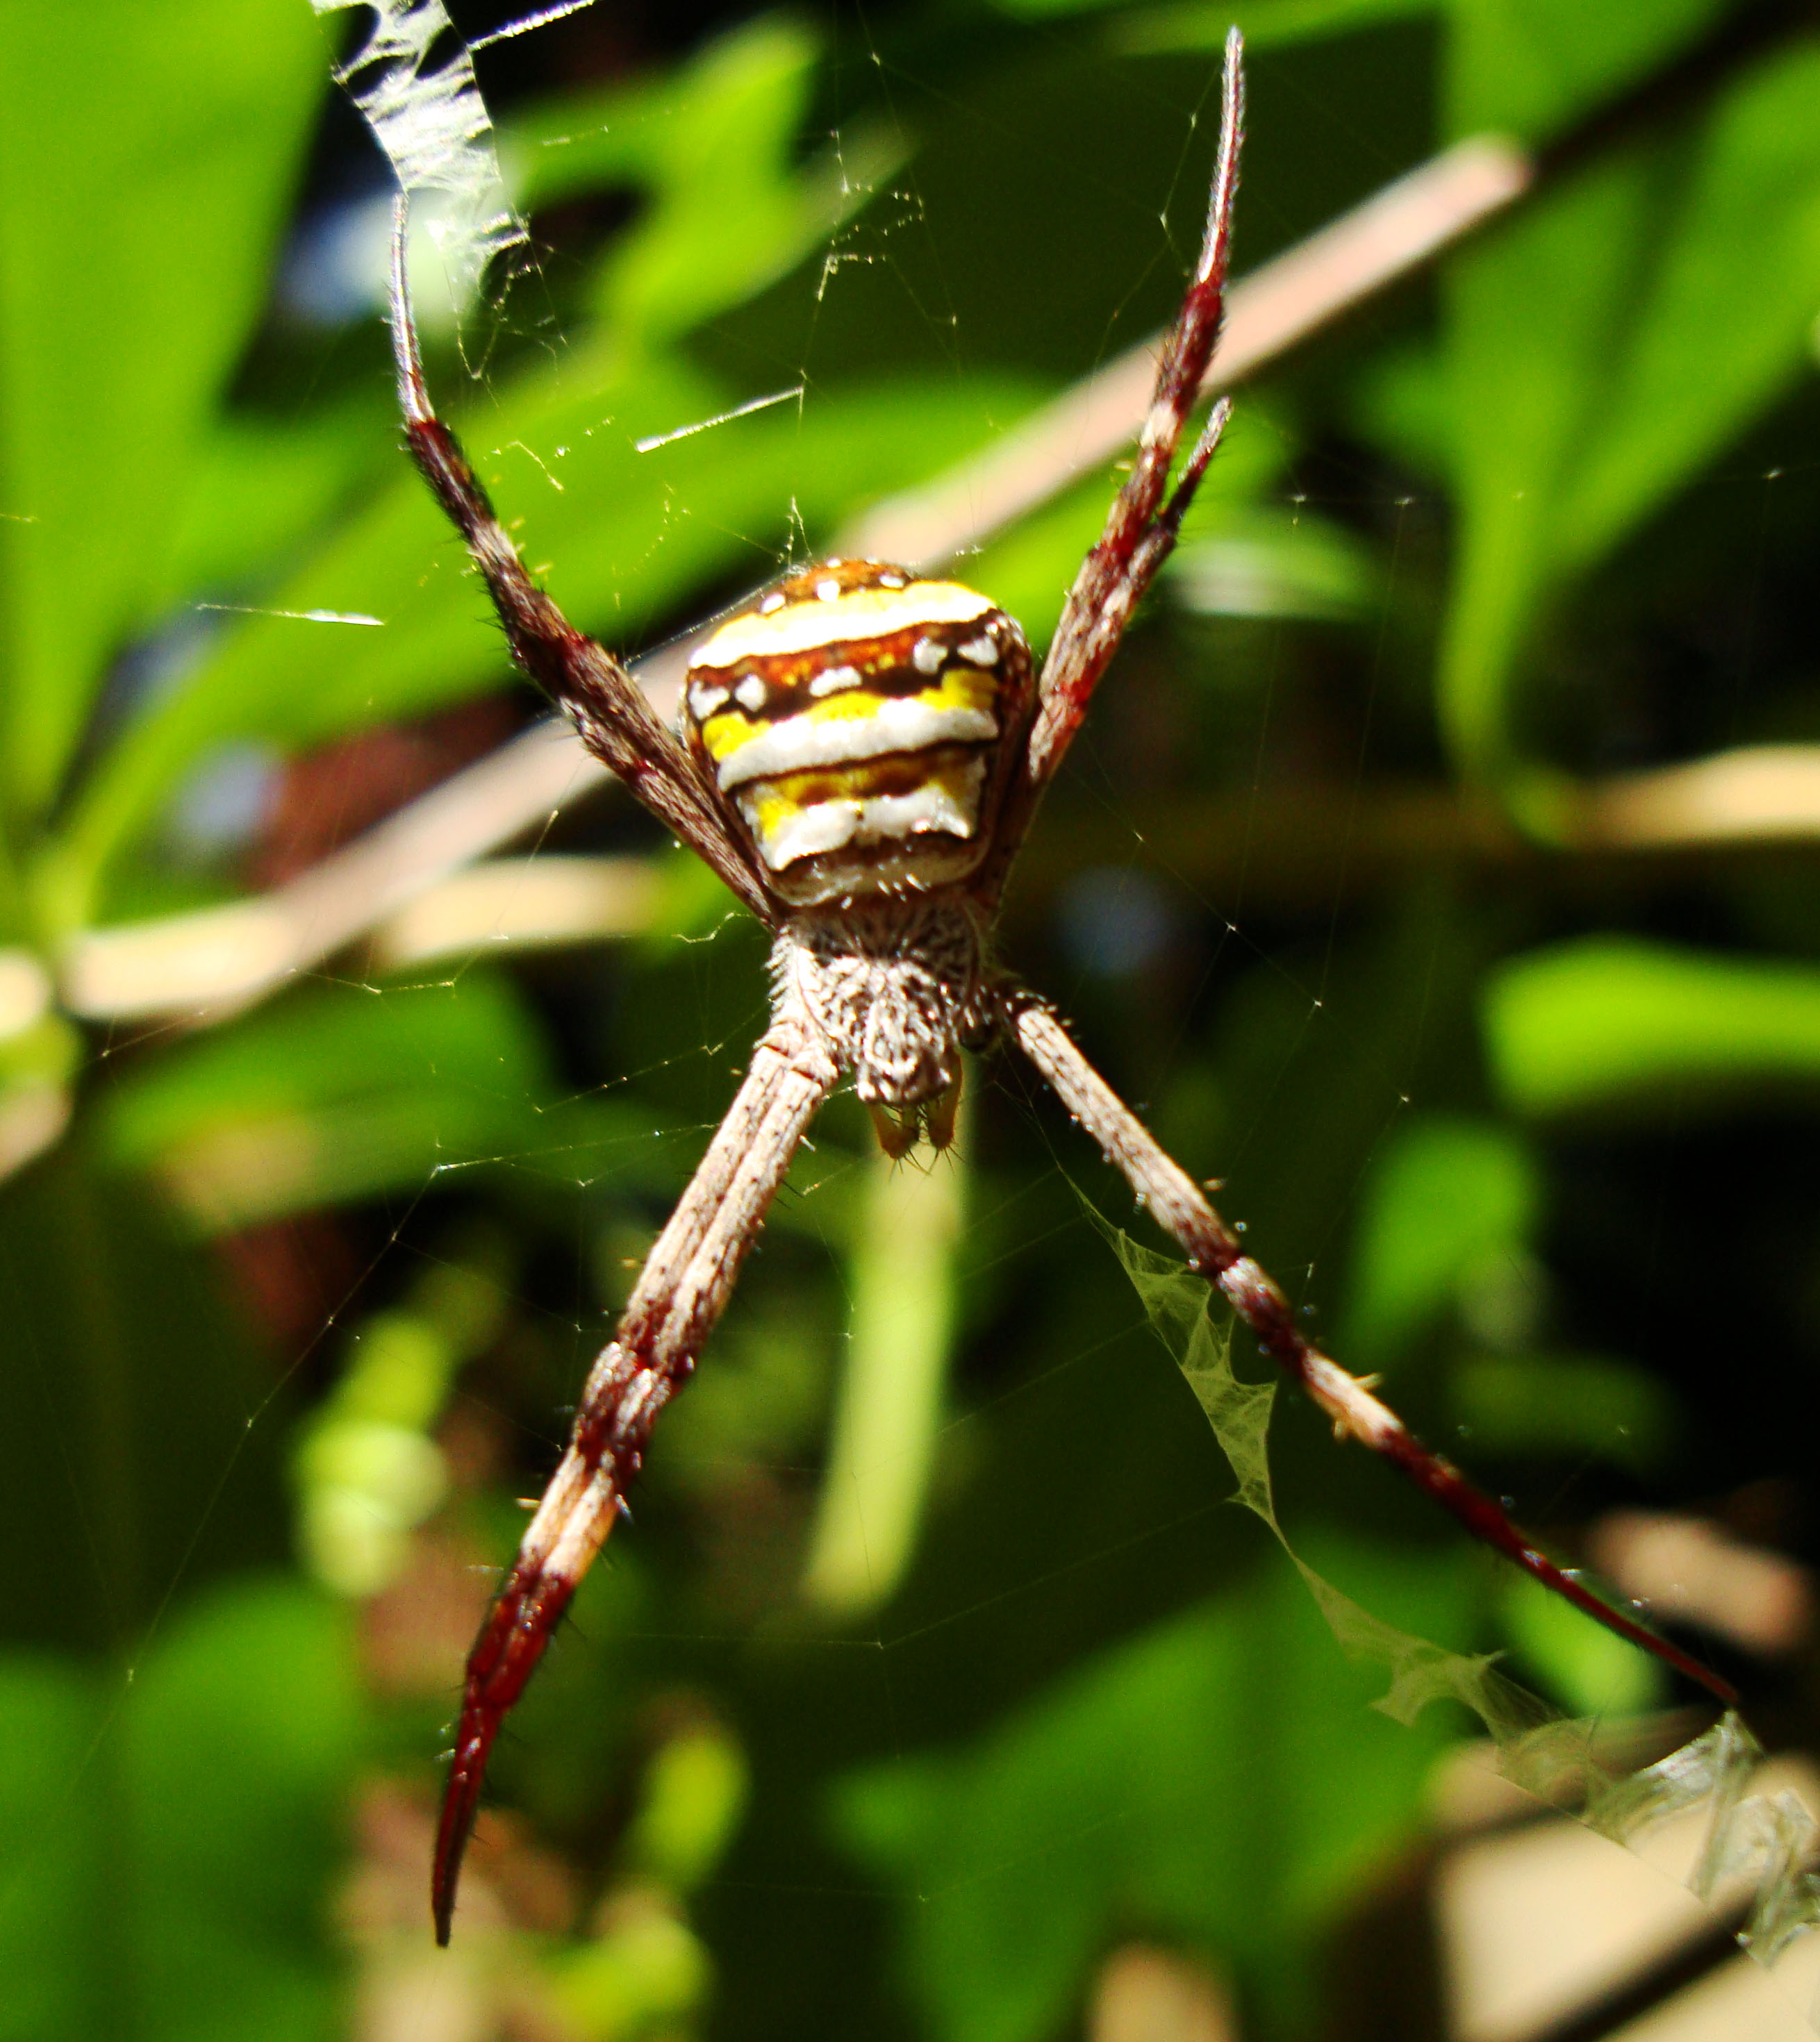 Saint Andrews Cross Spider Marcus Beach Sunshine Coast Qld Australia 08